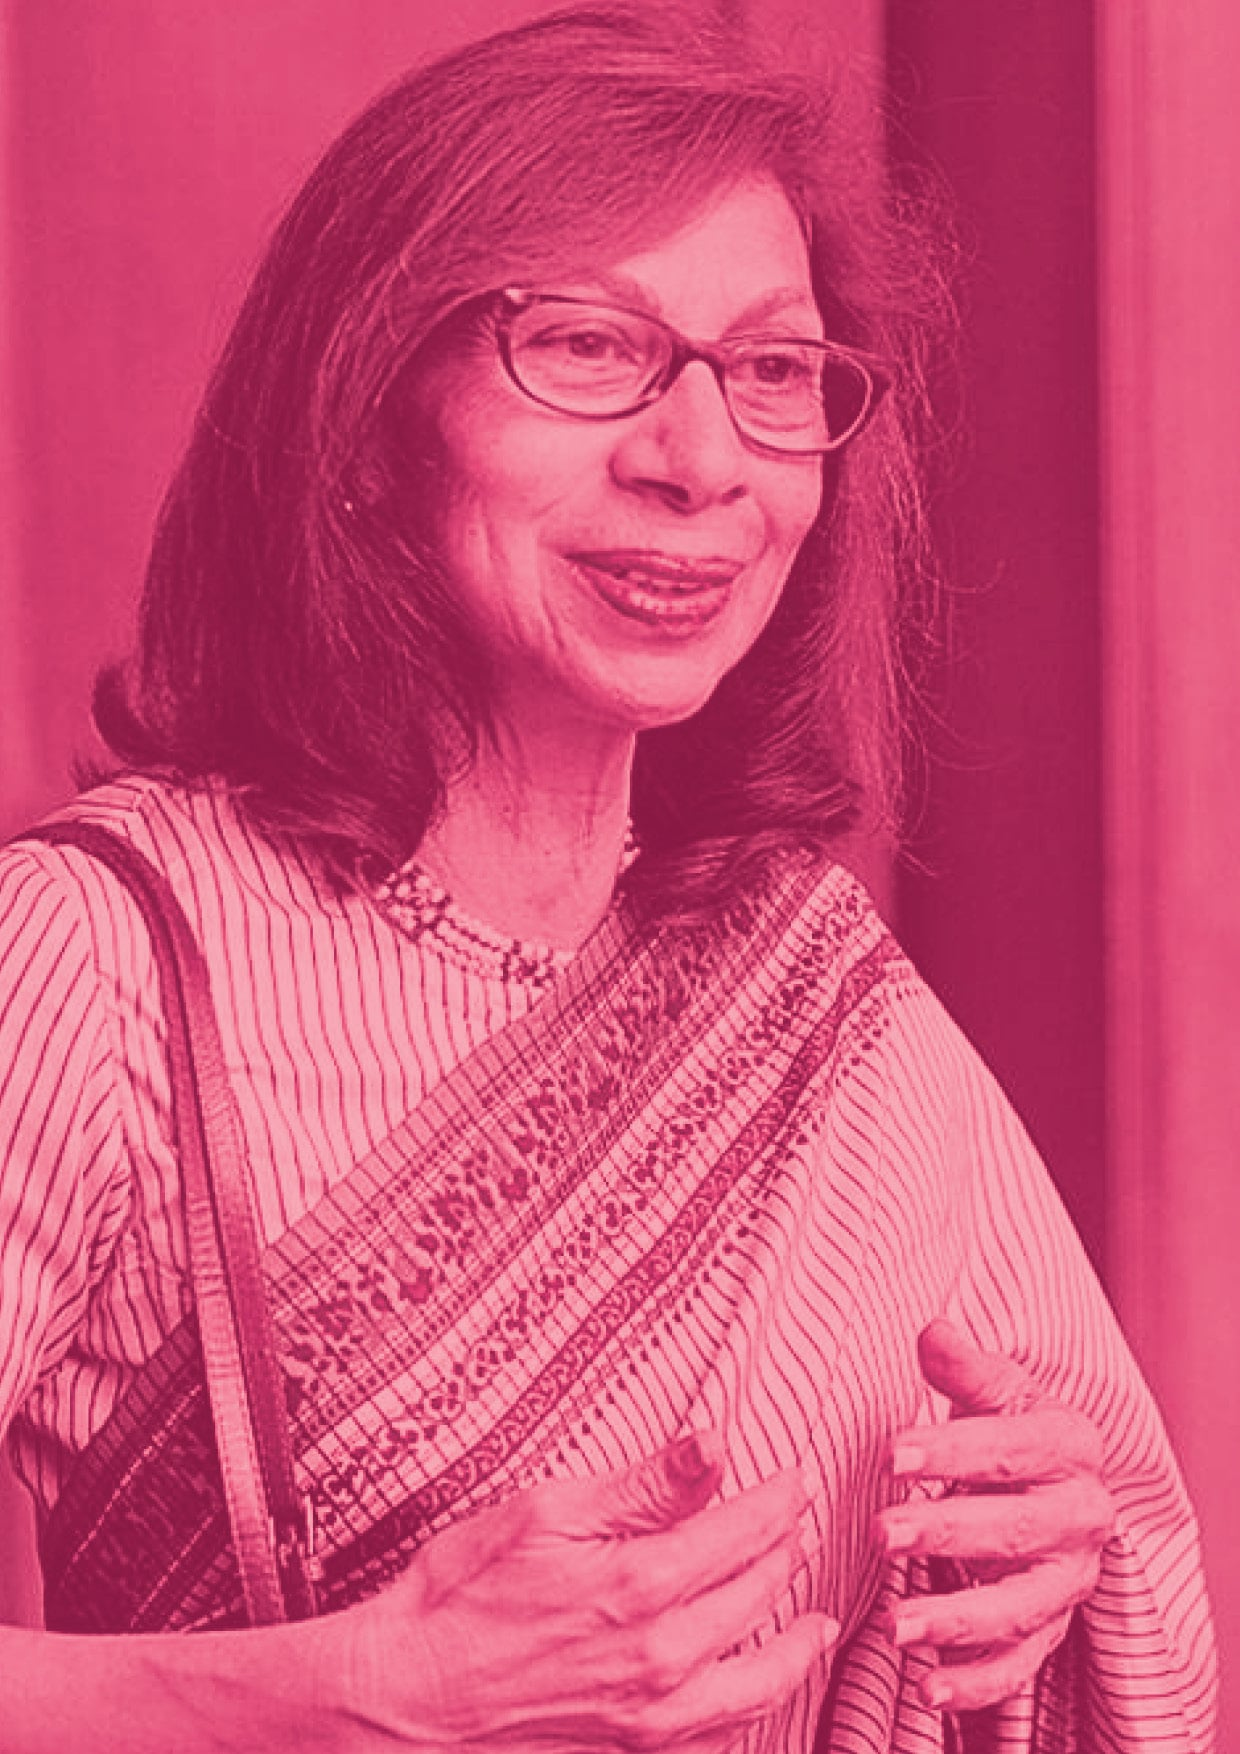 4. Smita Crishna-Godrej: Net Worth: Rs 18,910 crore. Smita Crishna-Godrej hails from the storied Godrej clan and has a one-fifth stake in the family assets. Her brother Jamshyd runs consumer goods firm Godrej & Boyce. Her husband Vijay Crishna, a well-known theatre actor, and daughter Nyrika Holkar, work in the group.